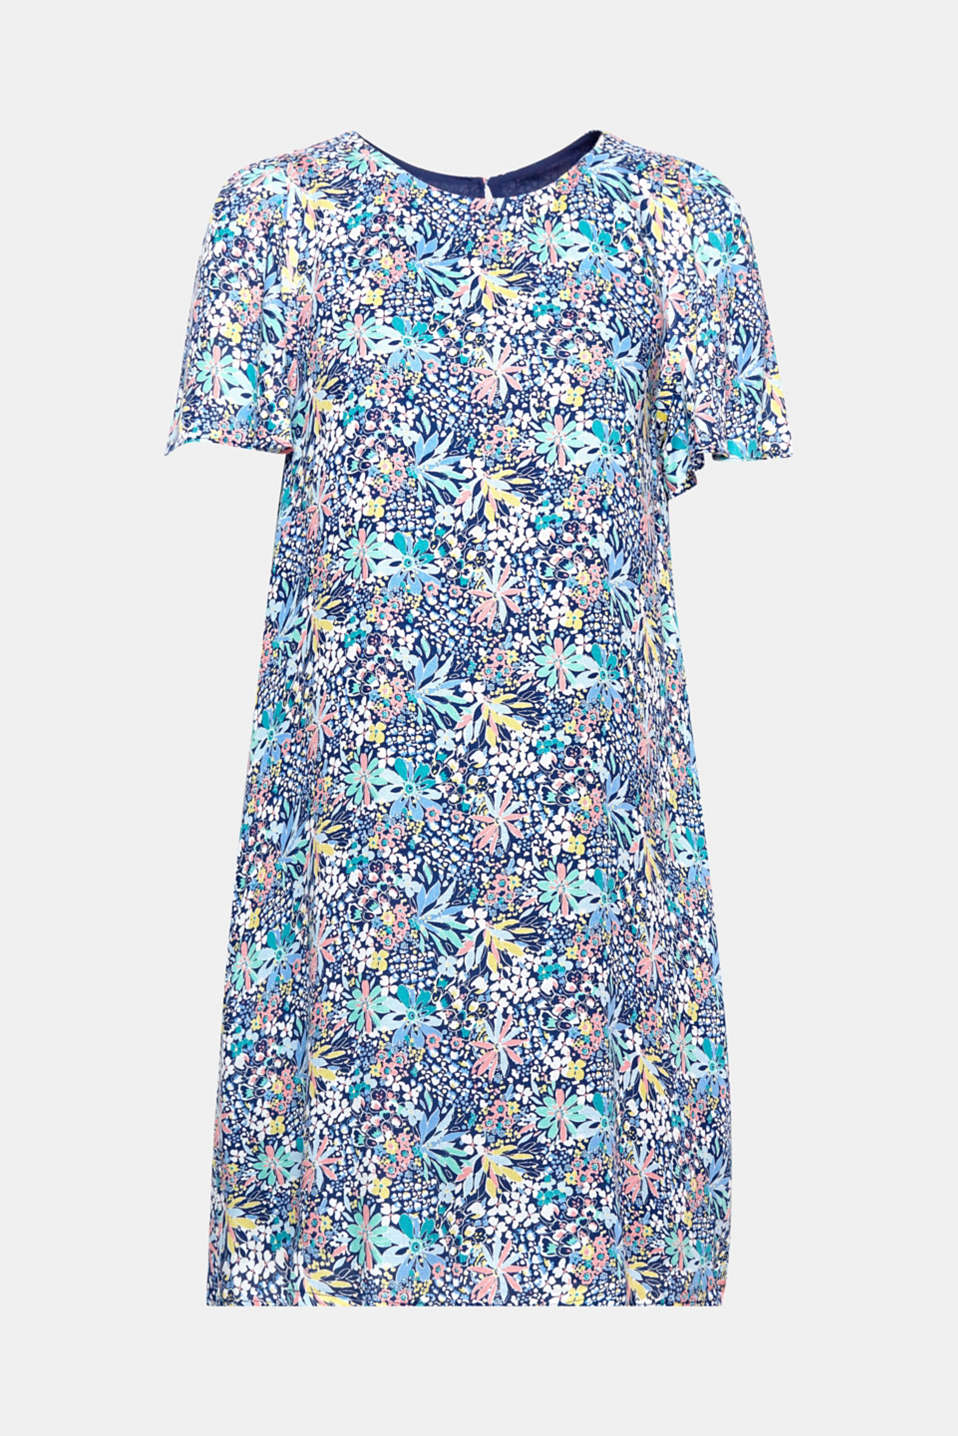 Simply put it on and you have the perfect look for beautiful summer days: loose-fitting dress with a beautiful mille-fleurs print and wing sleeves!